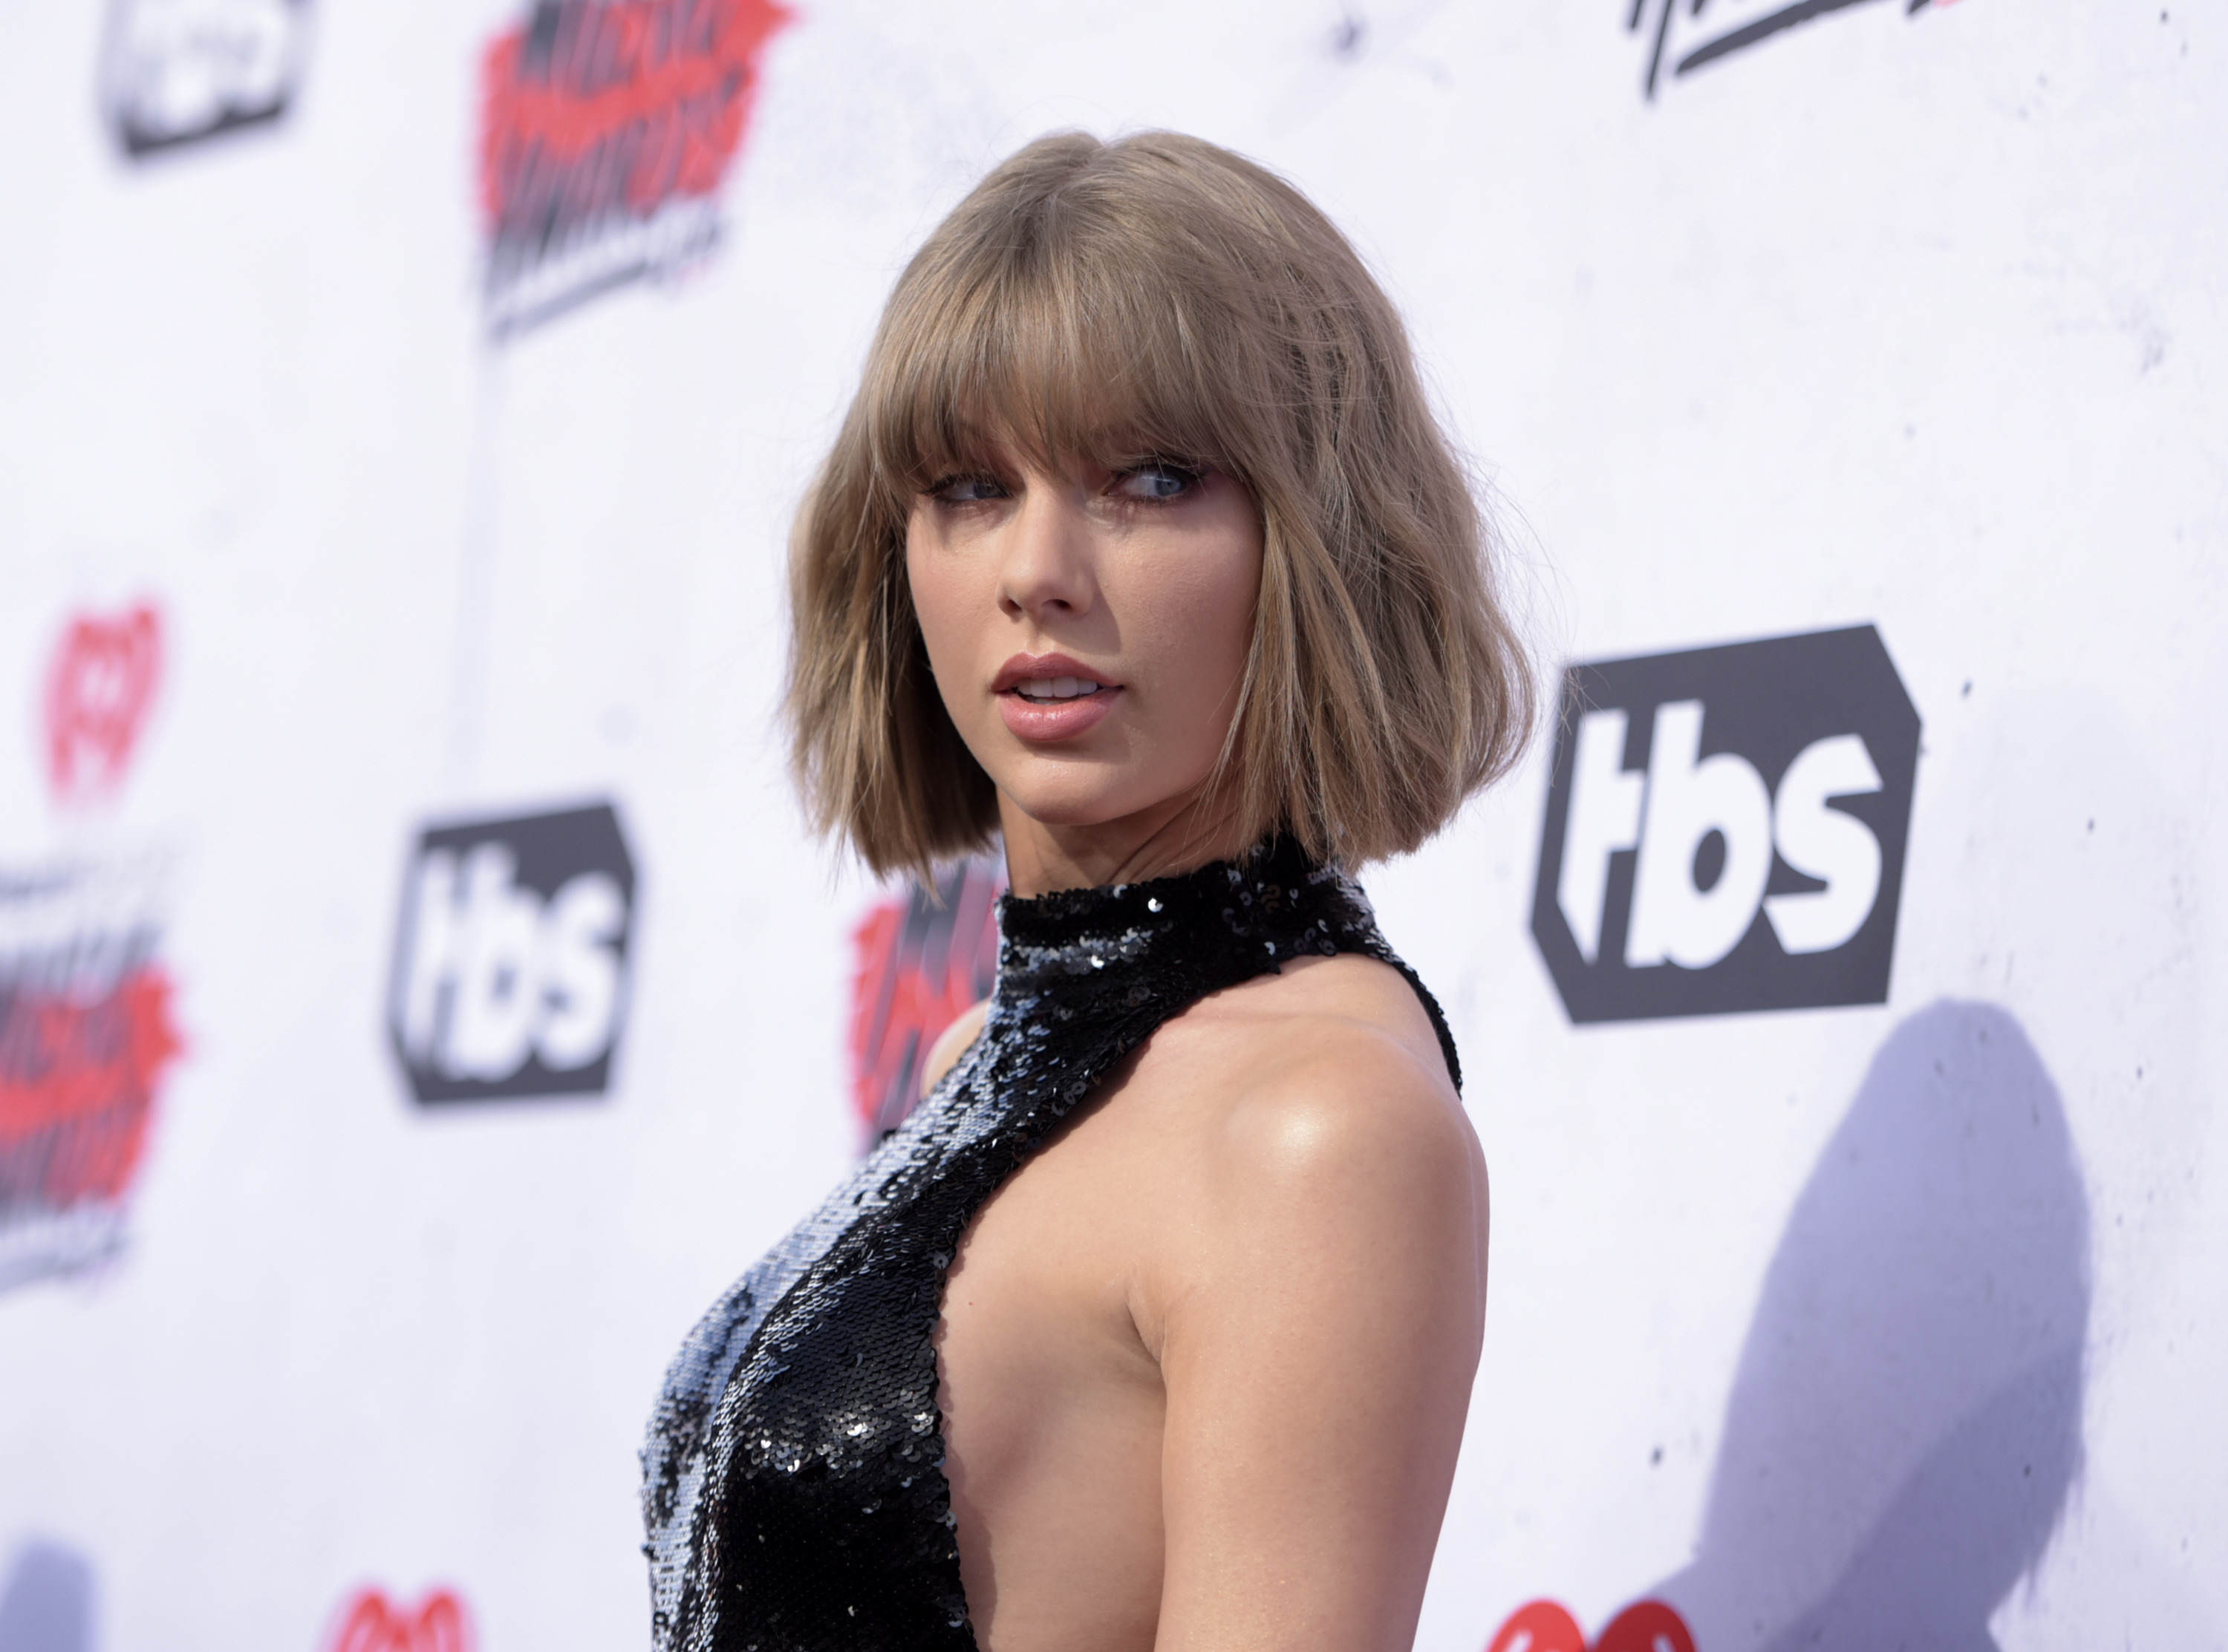 The Kanye West Taylor Swift Feud Has Just Got A Whole Lot Worse PA 25975933